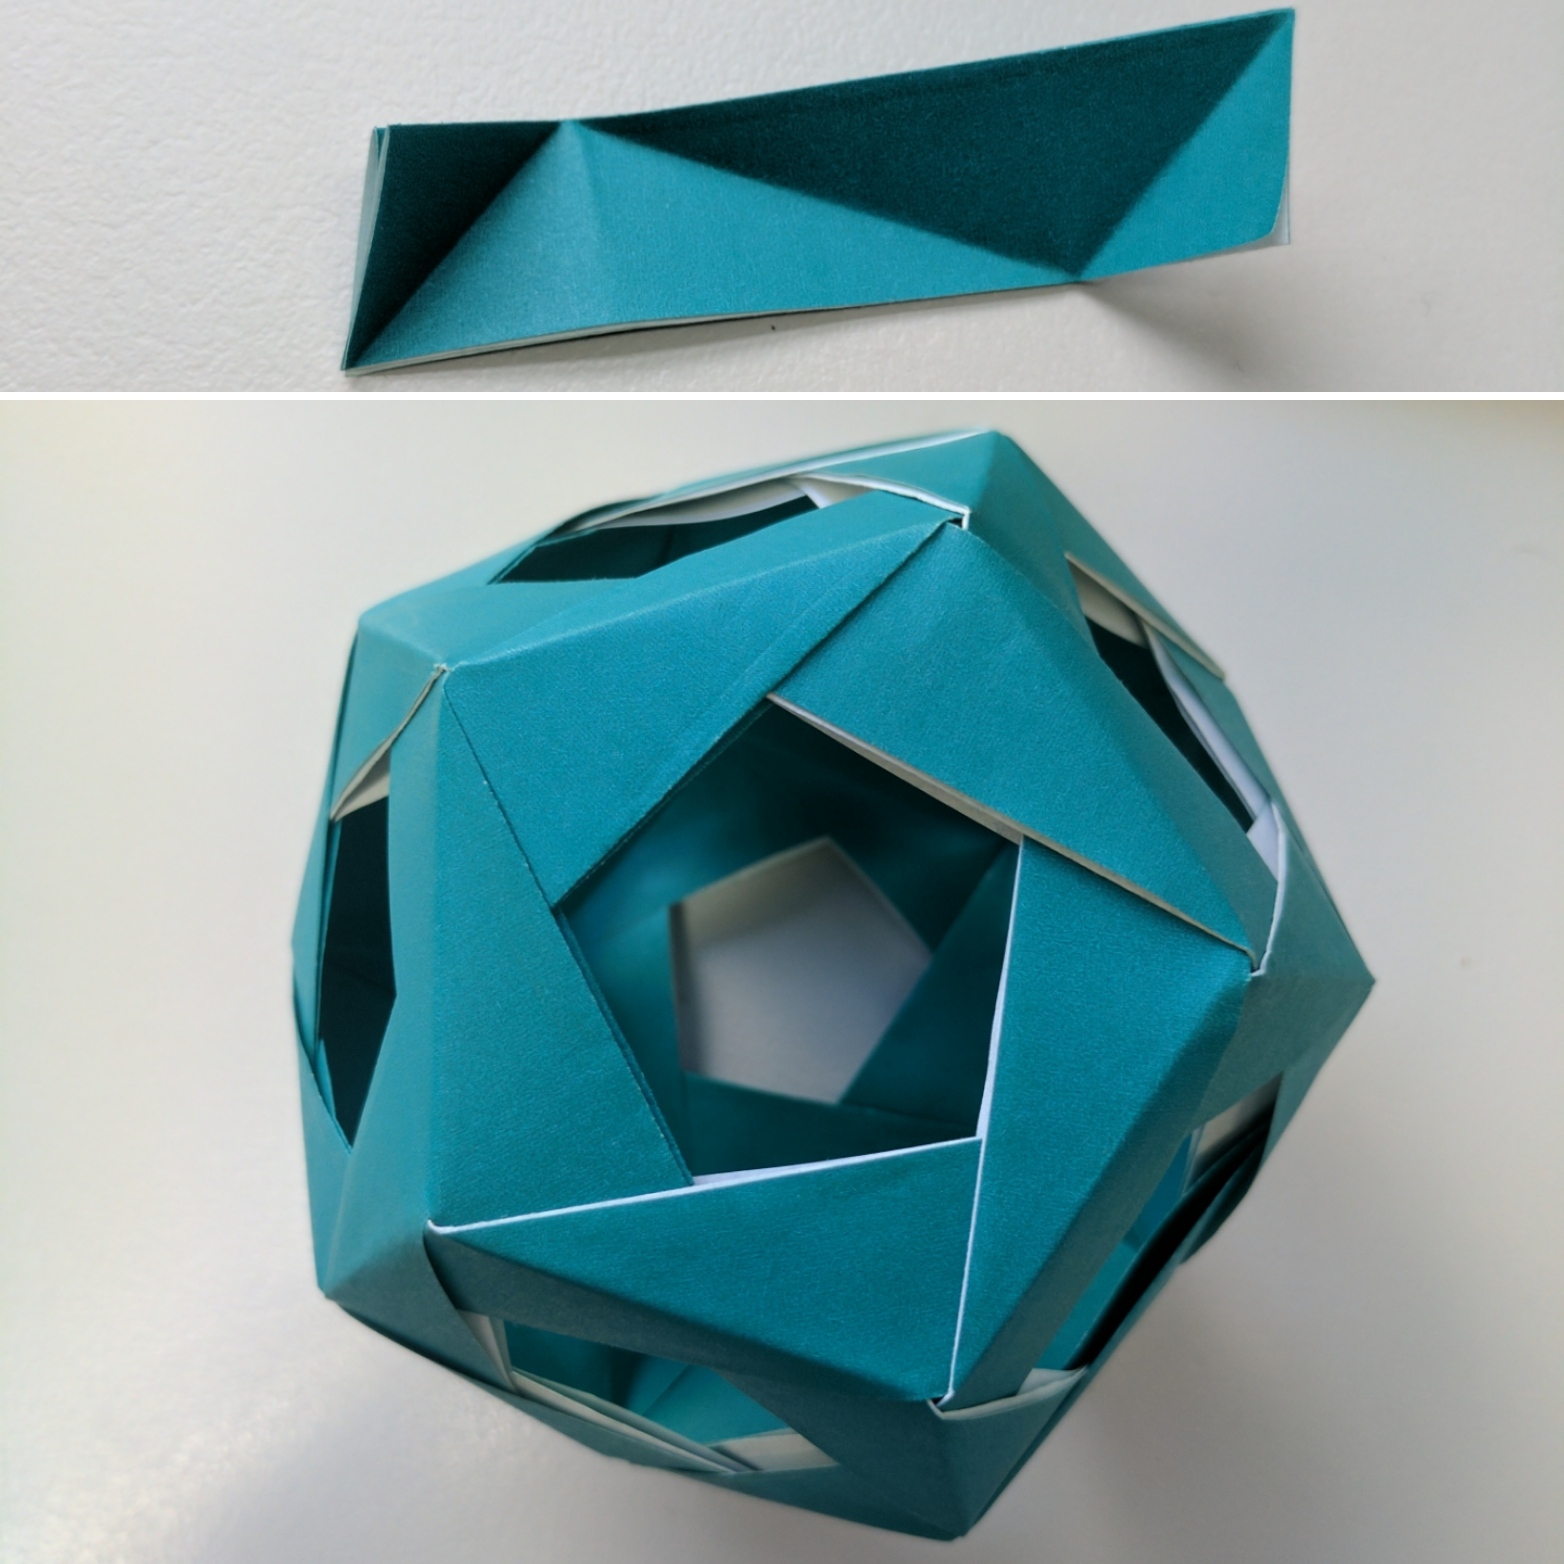 Modular origami dodecahedron